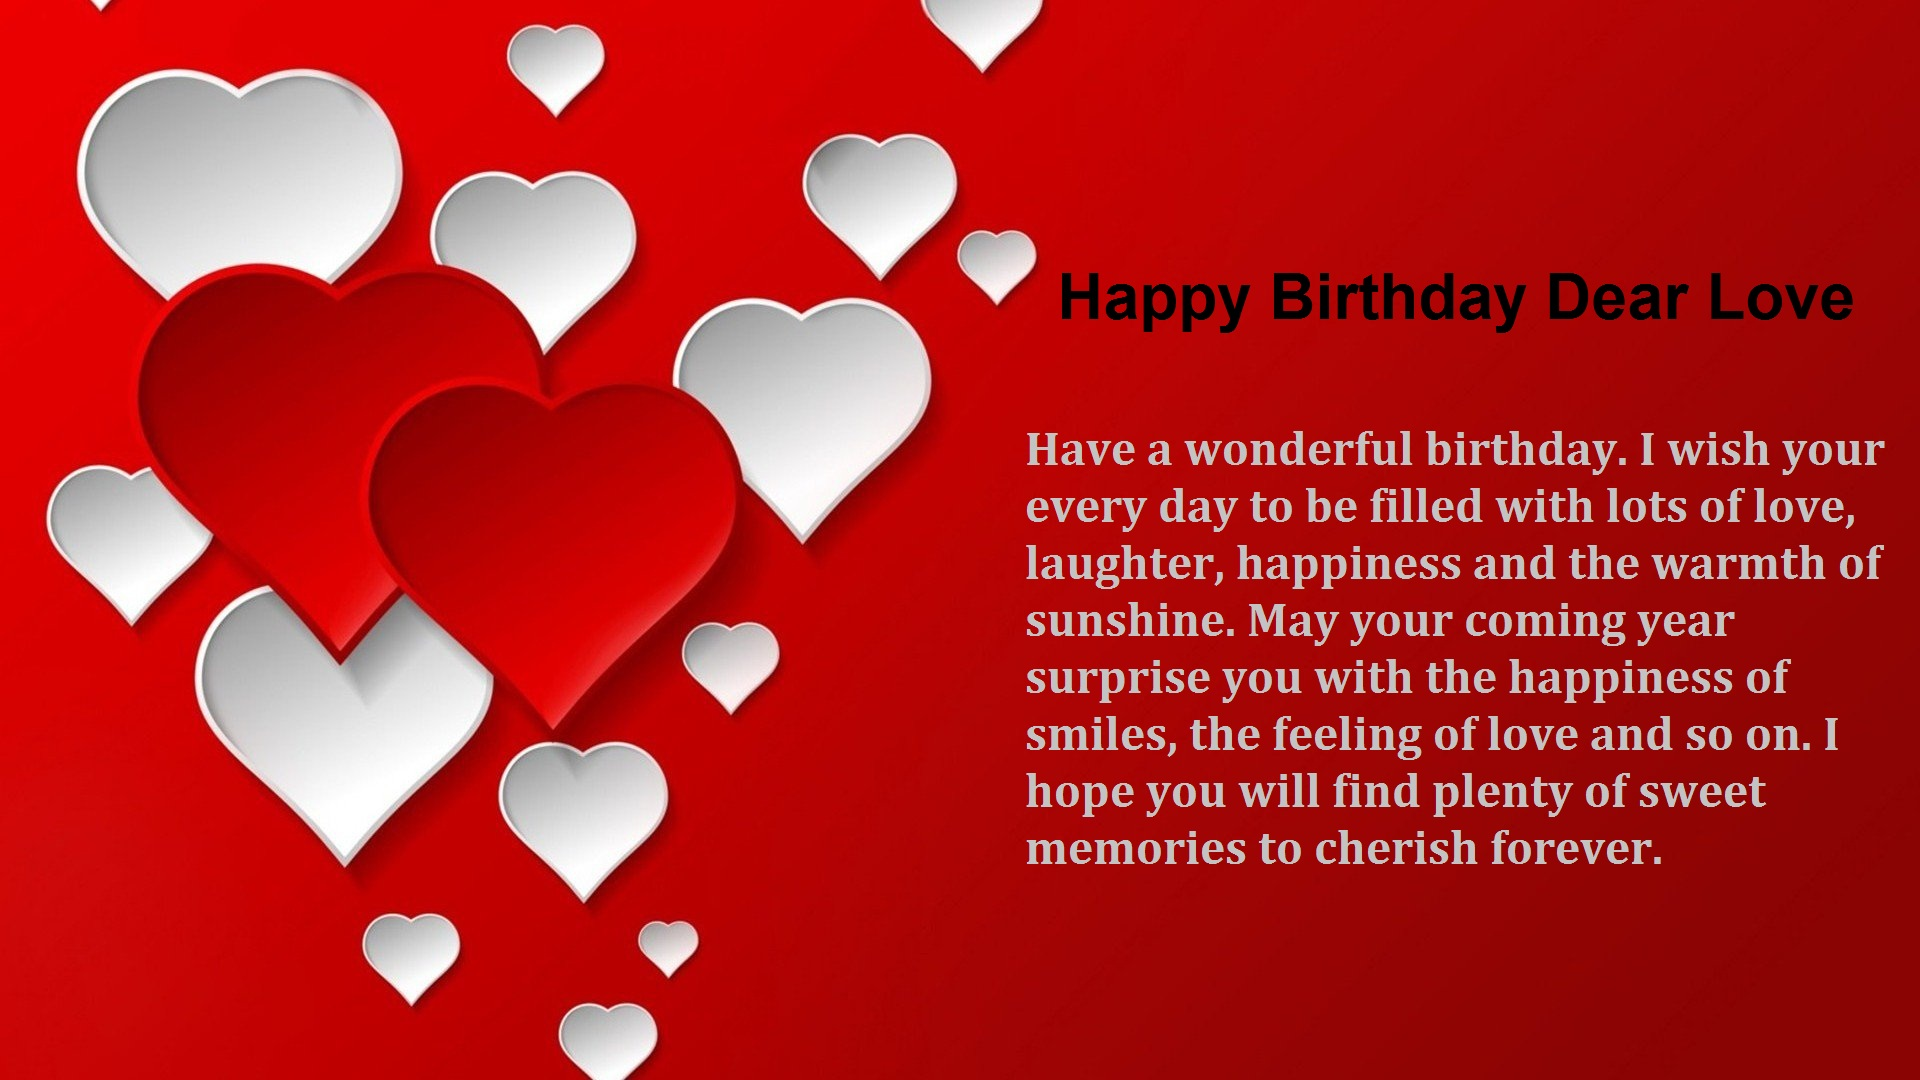 Birthday-Heart-Love-Quotes-Images-Wallpapers